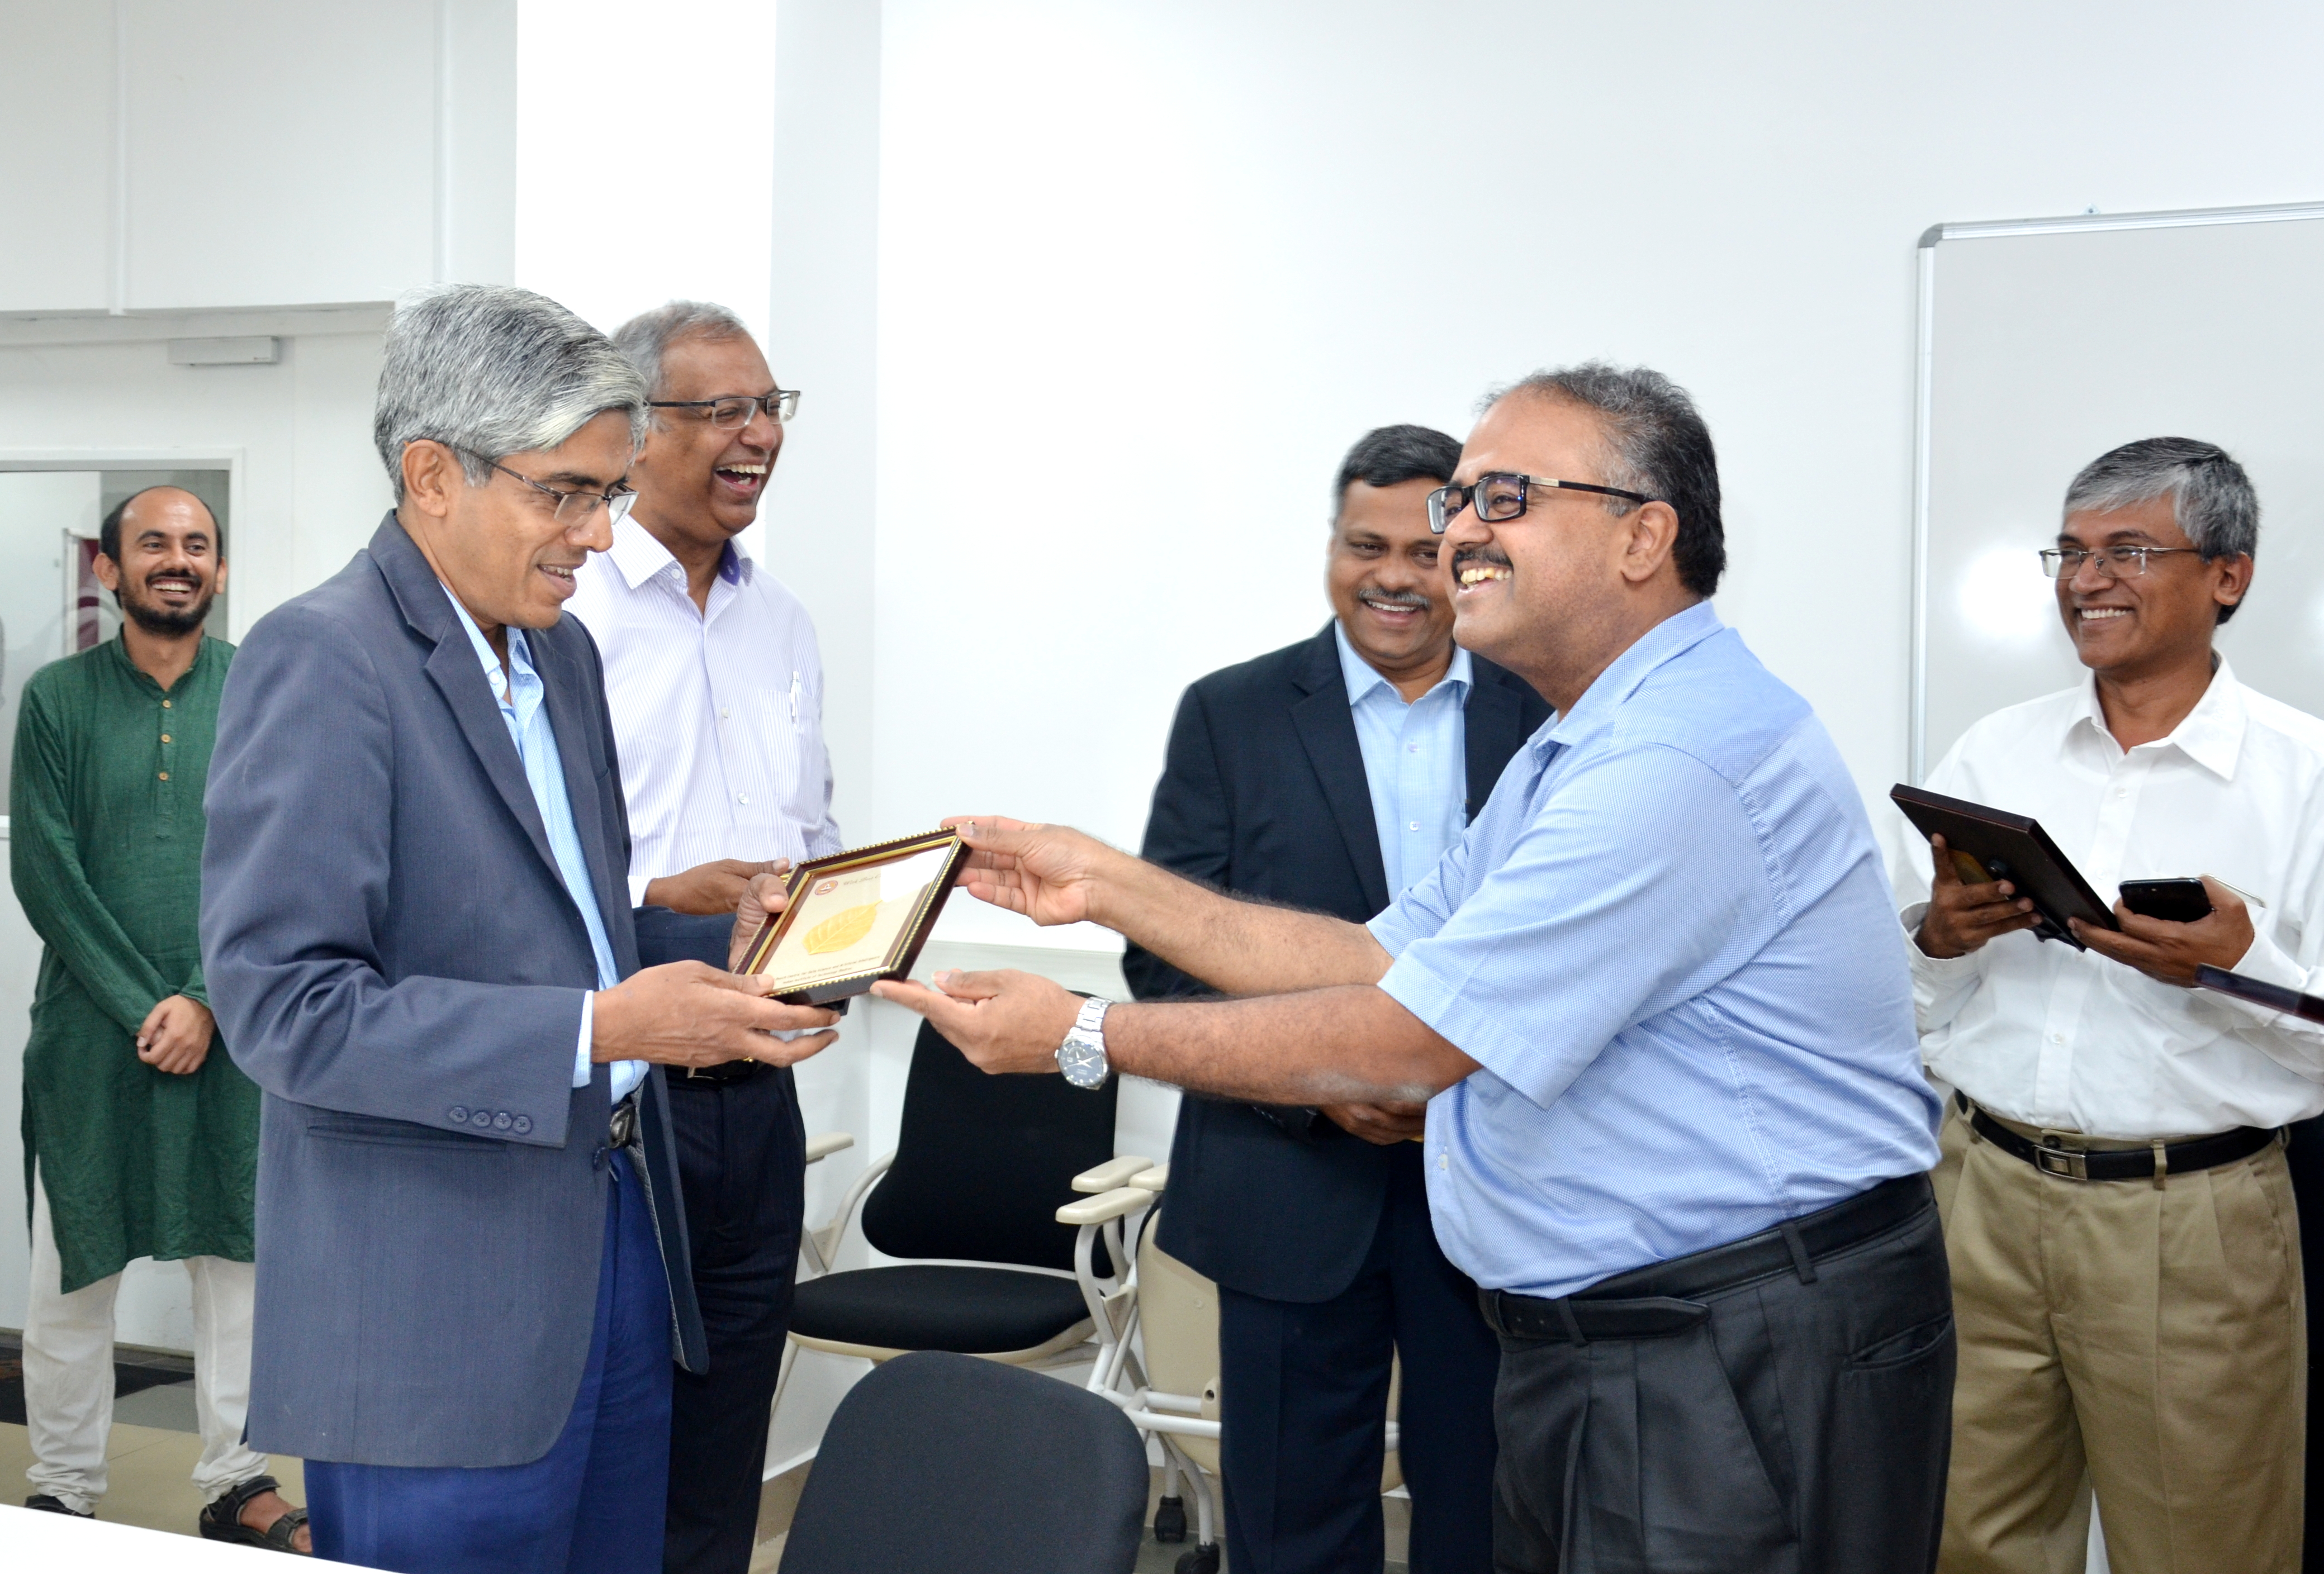 Inauguration ceremony of the Robert Bosch Center for data science and AI at the University of Madras